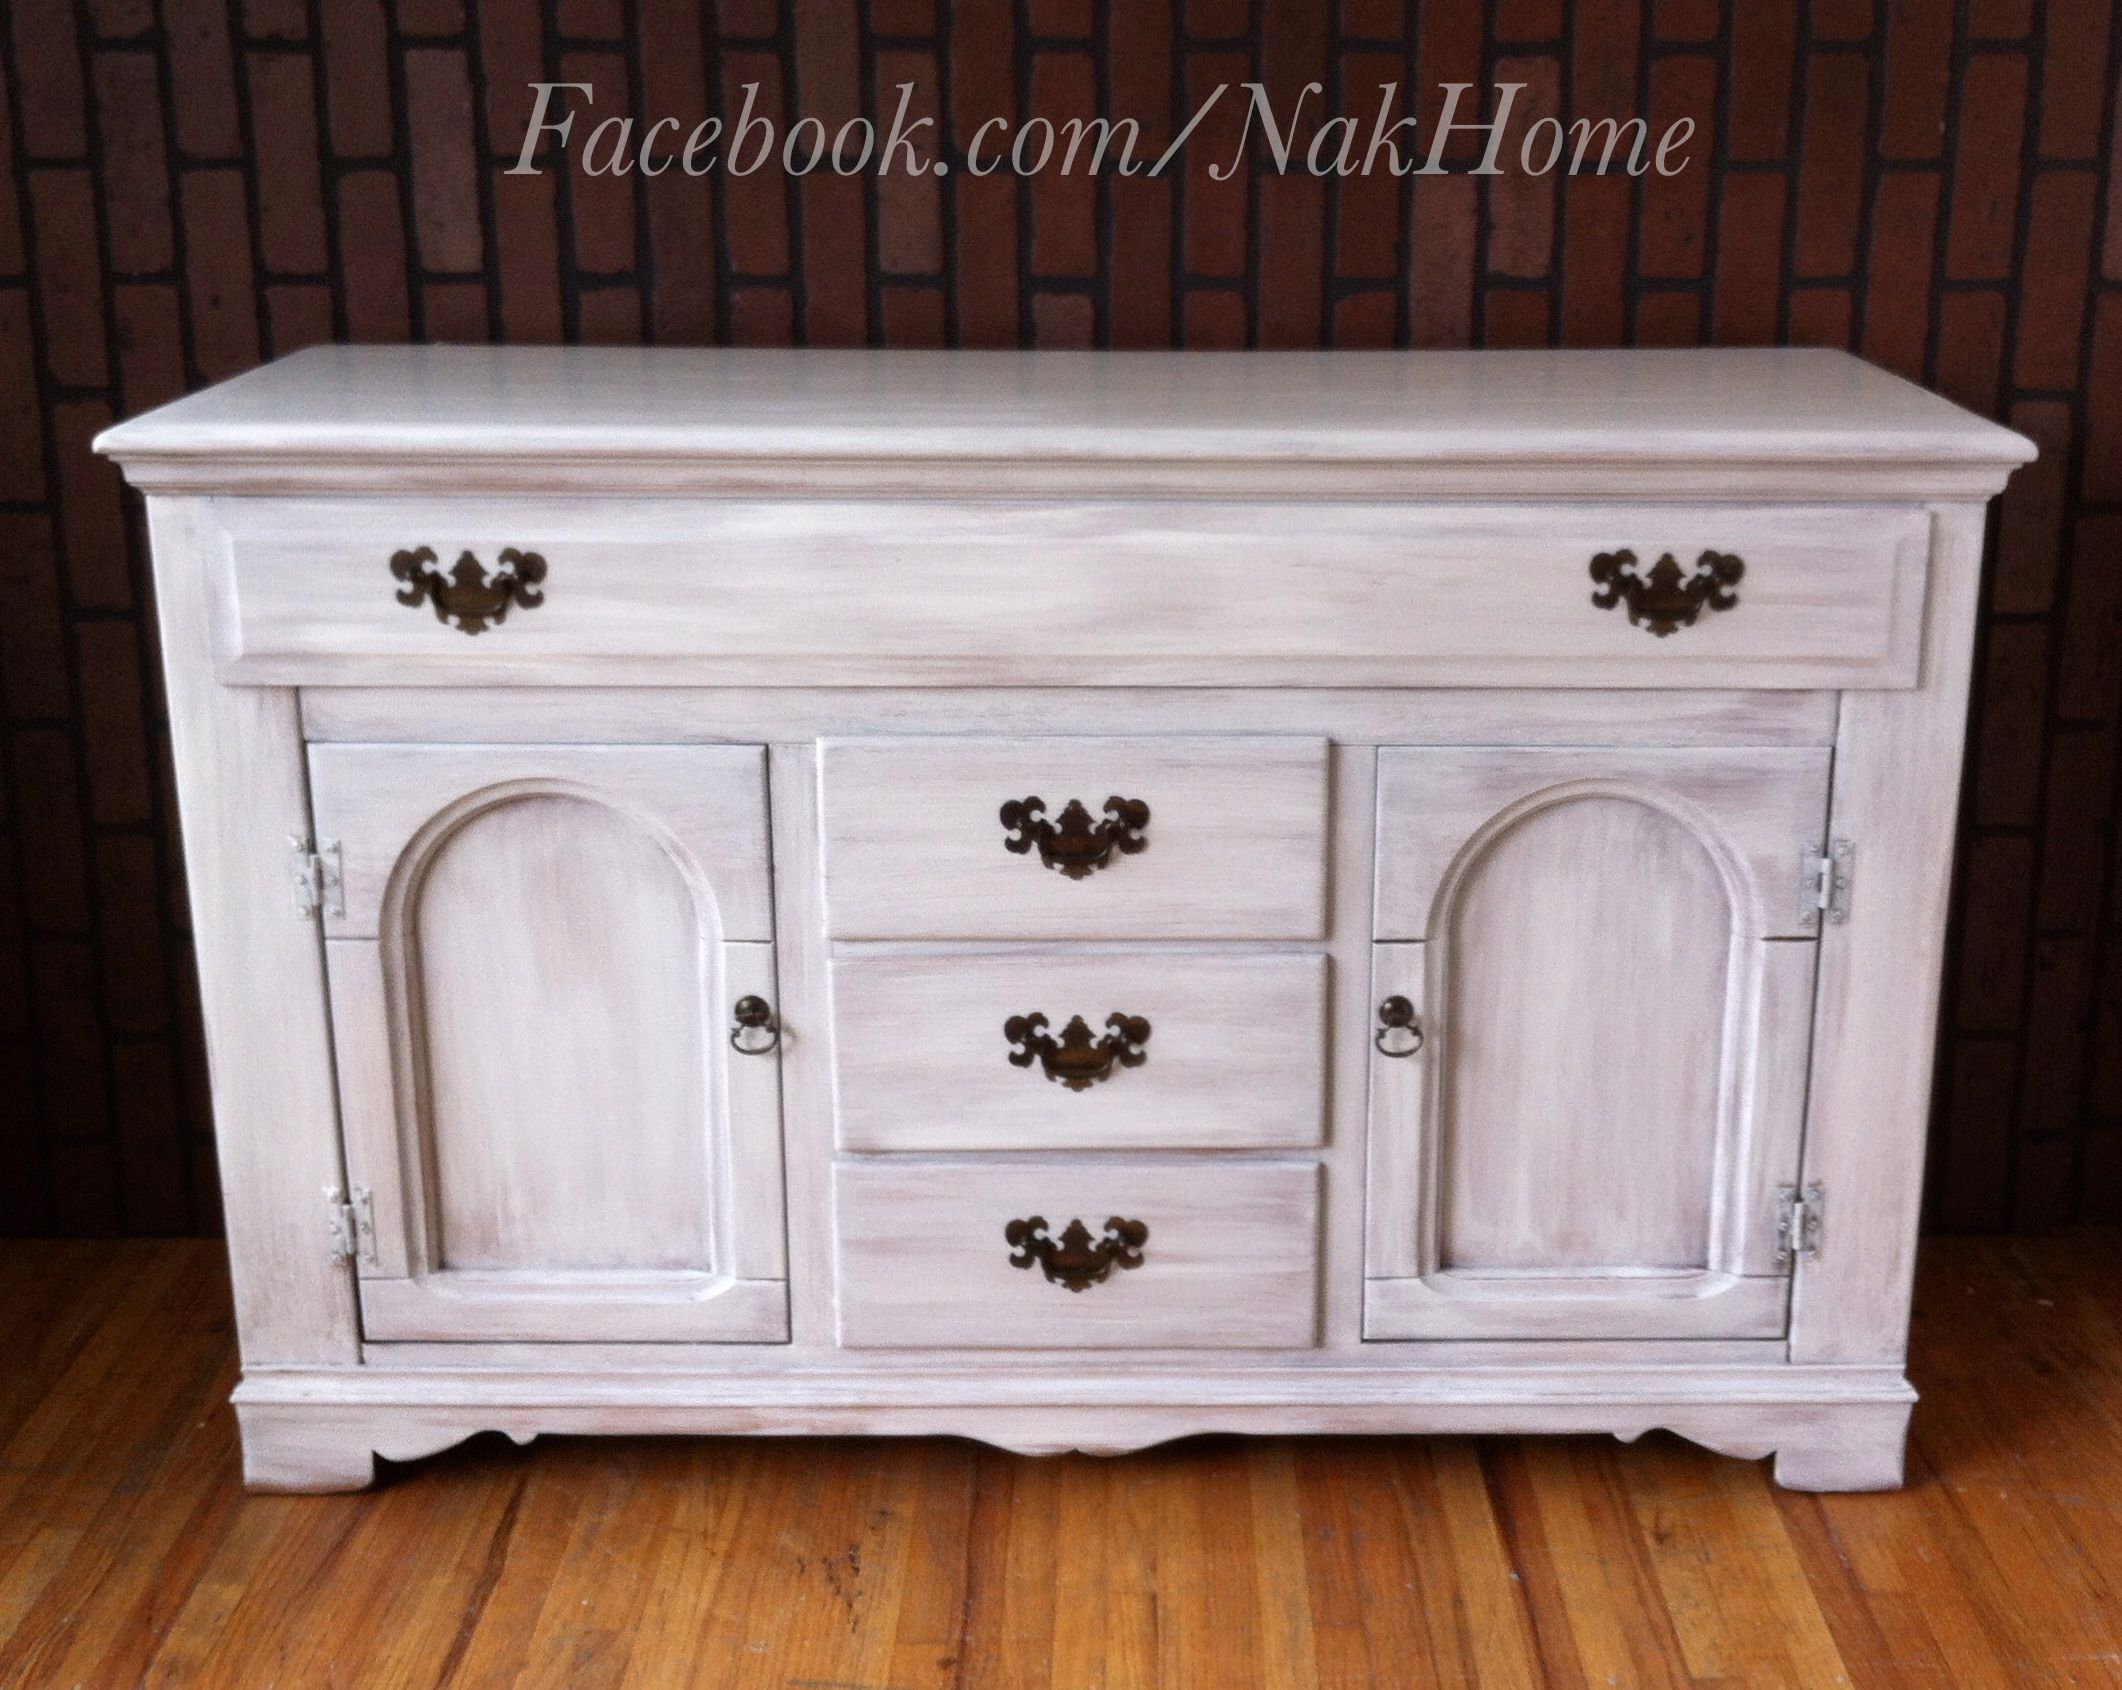 Furniture Makeover Shabby Chic White Vintage Buffet Tv Console Cabinet Hand Painted With Diy Chalk Paint And Distressed Facebook Nakhome